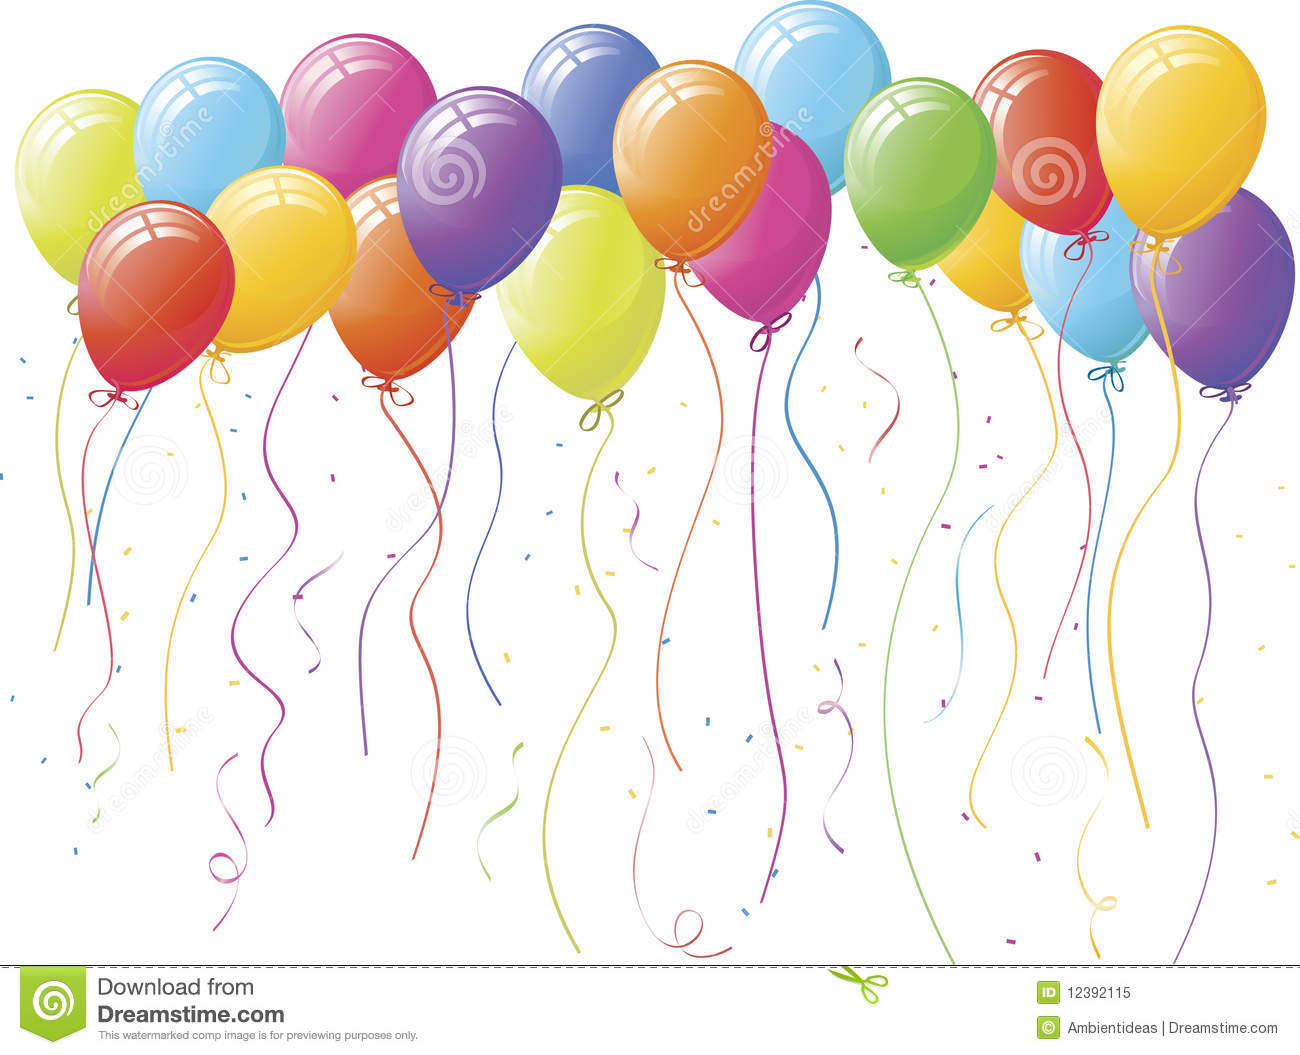 Confetti and balloons clipart party balloons and confetti 7xkepe clipart suggest